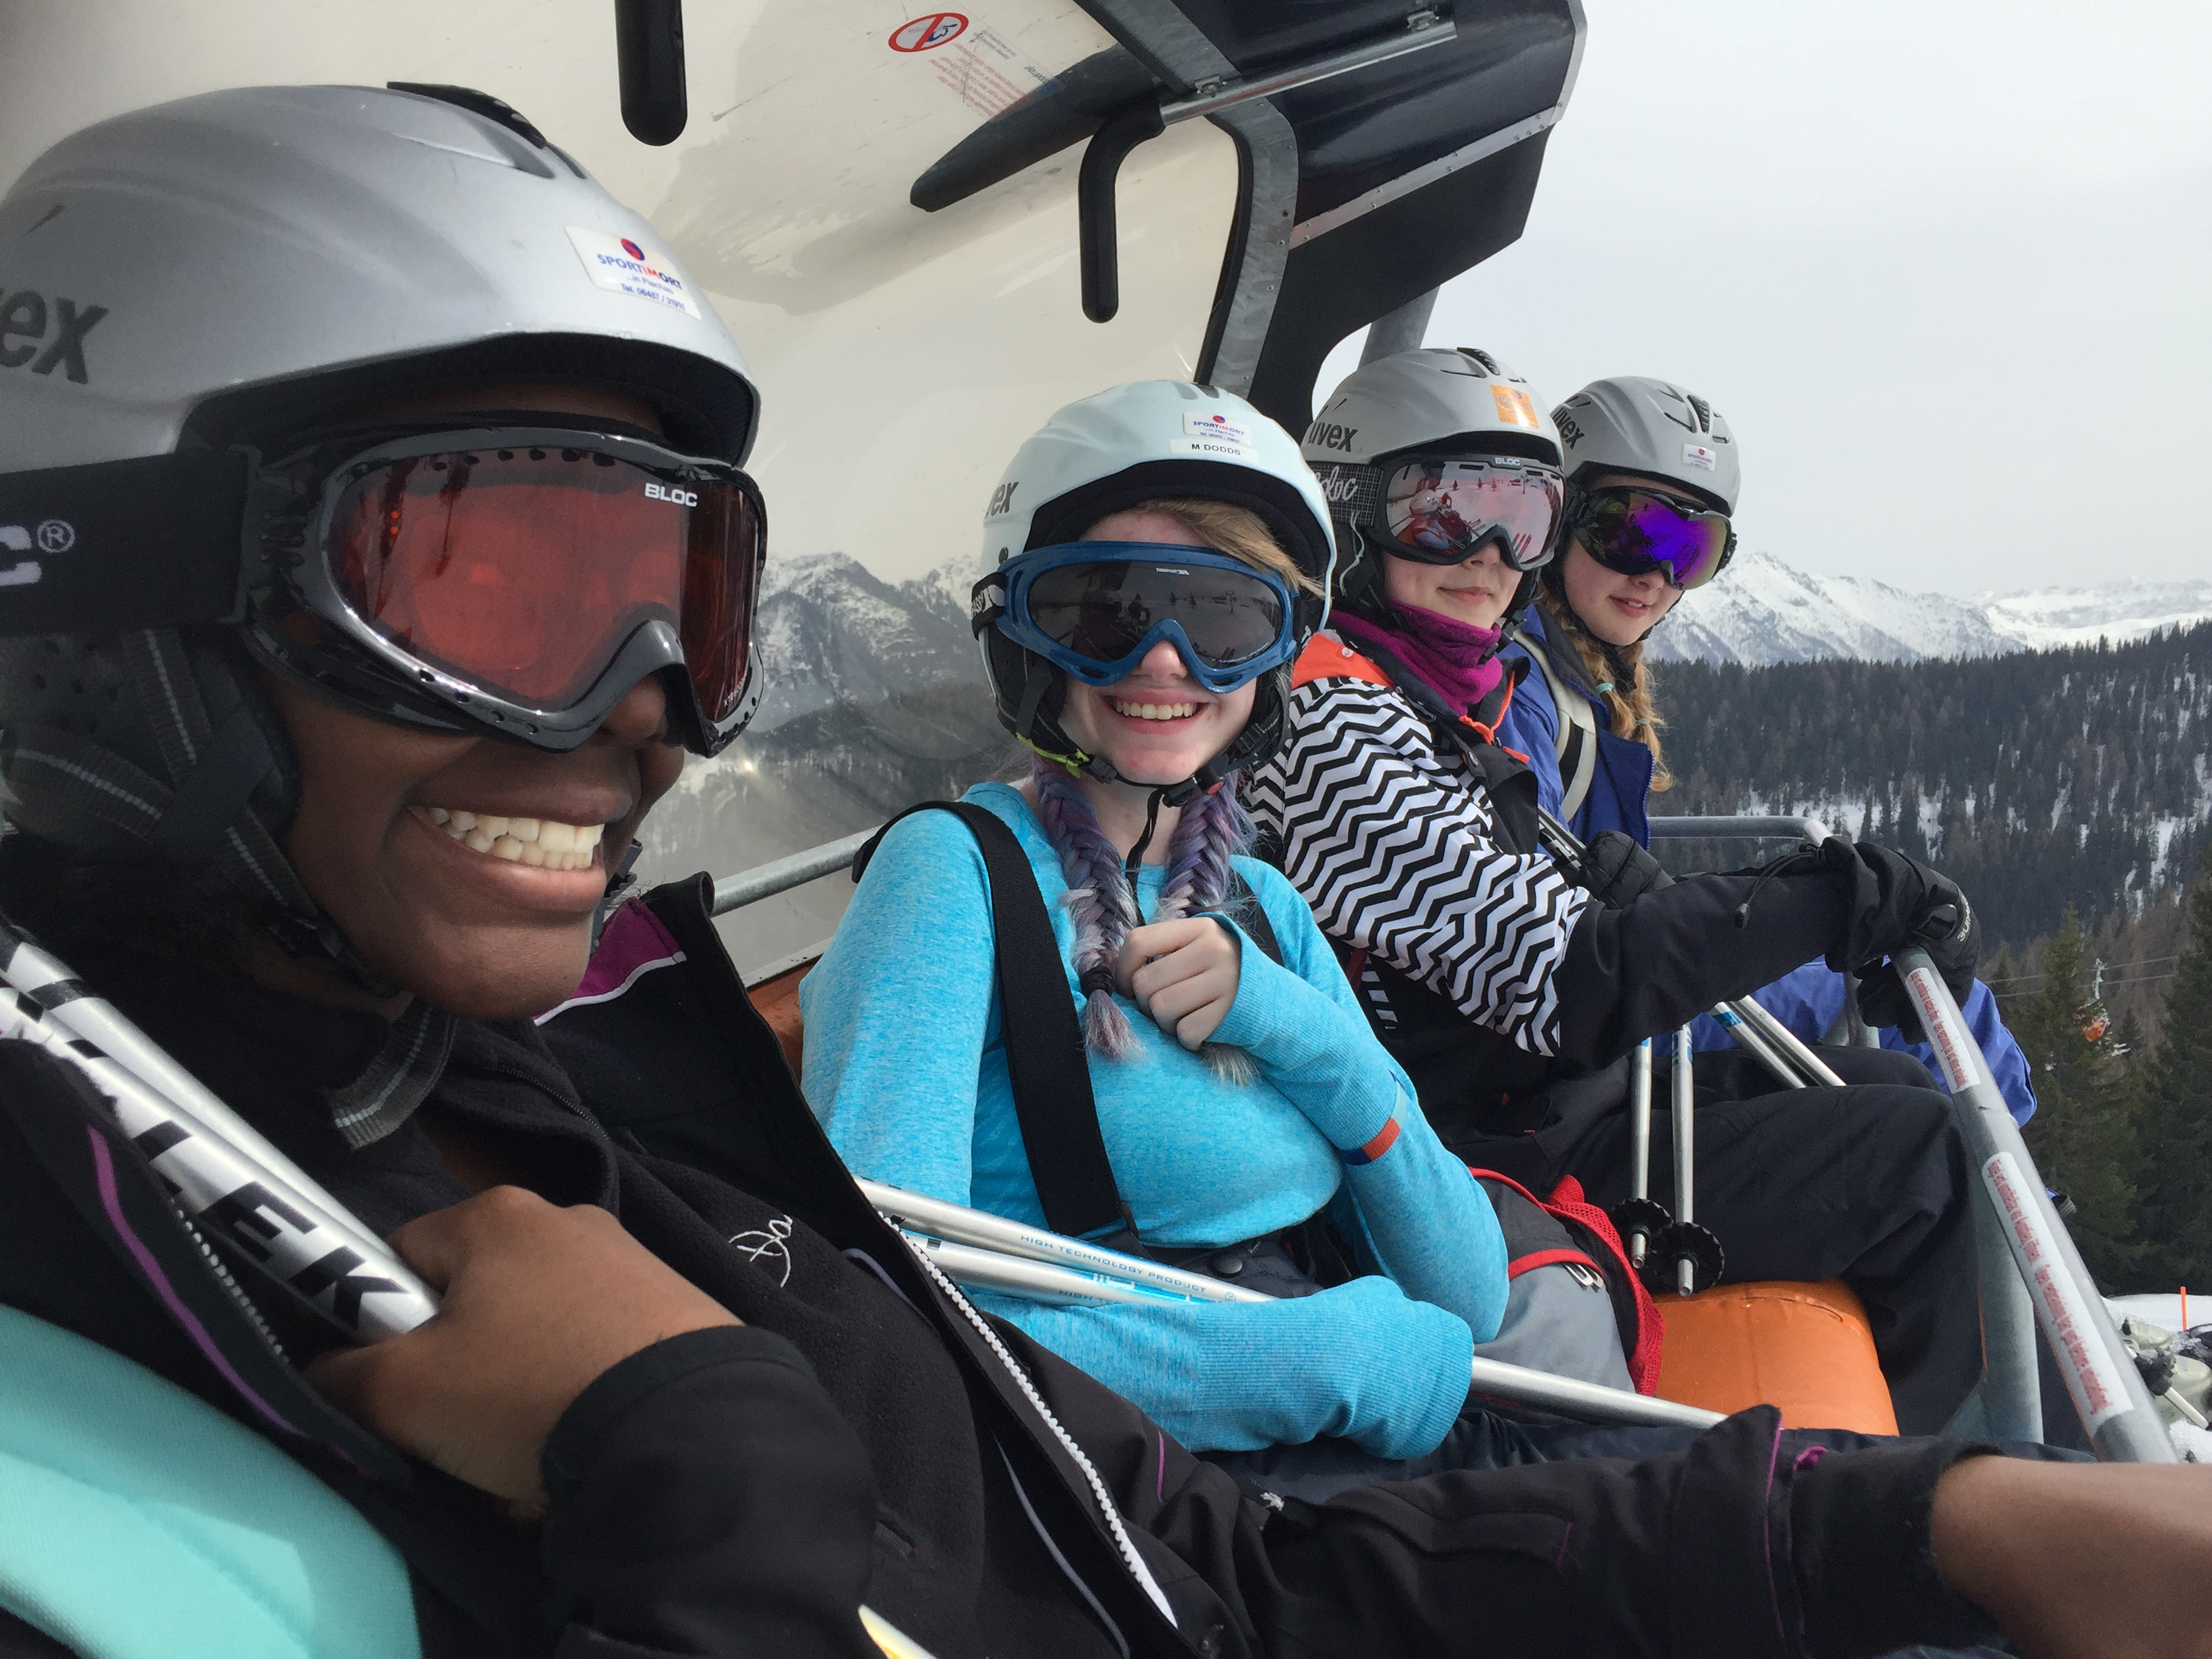 Grab yourself an Easter school ski trip bargain